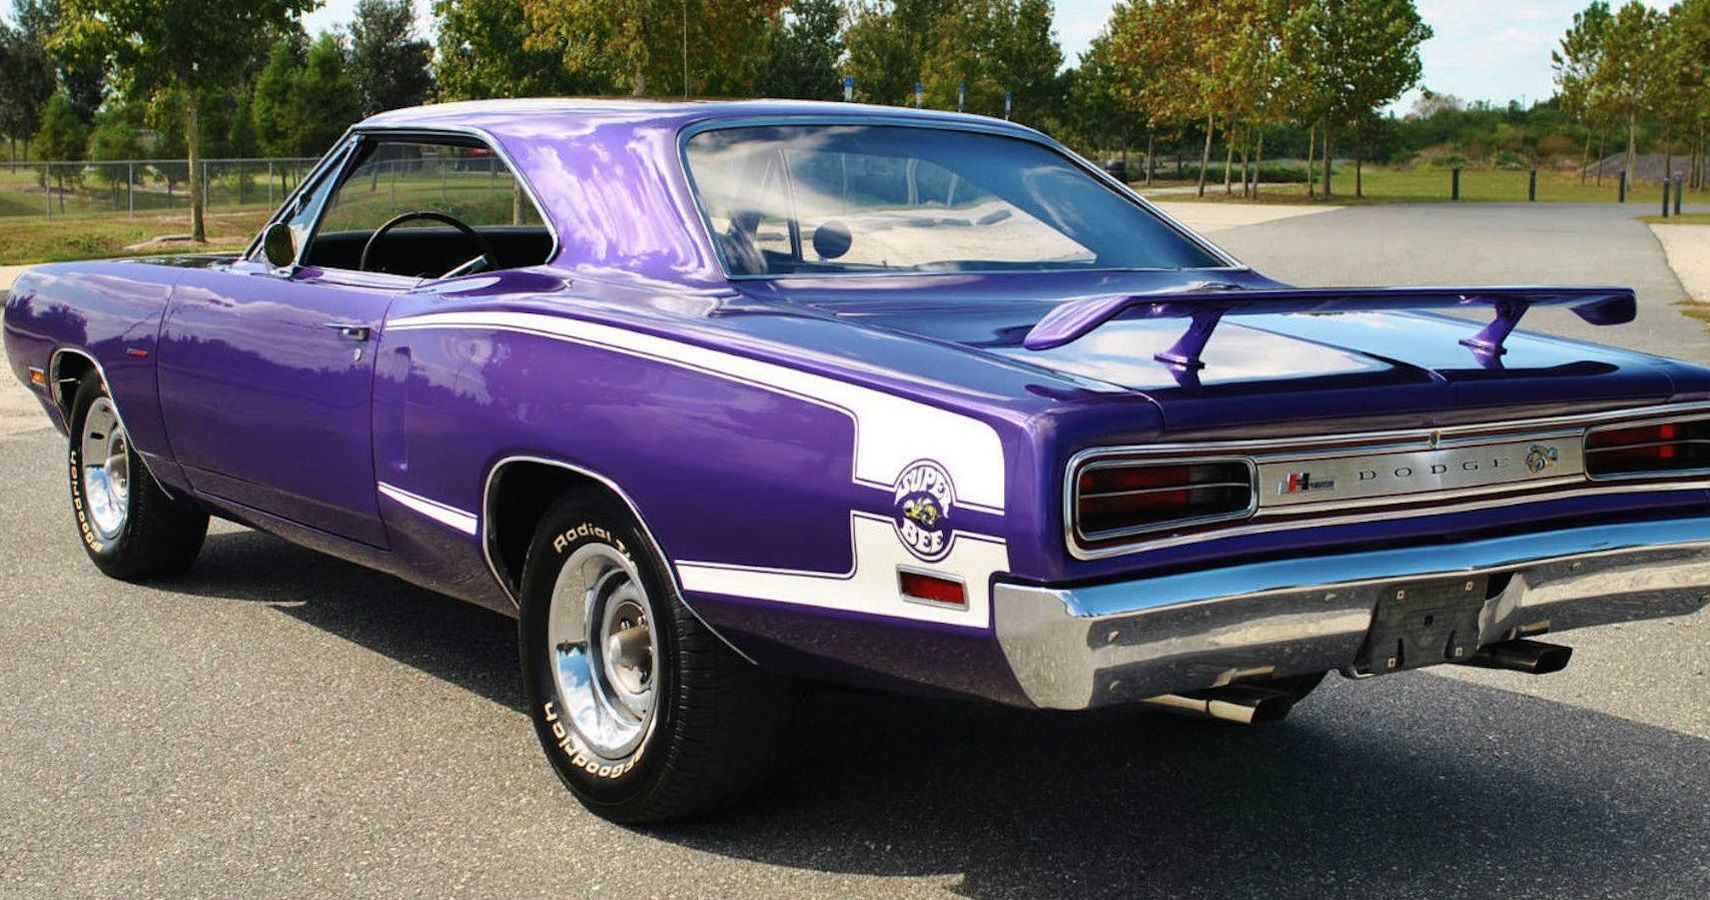 A Look Back At The 1970 Dodge Super Bee Muscle Car | HotCars